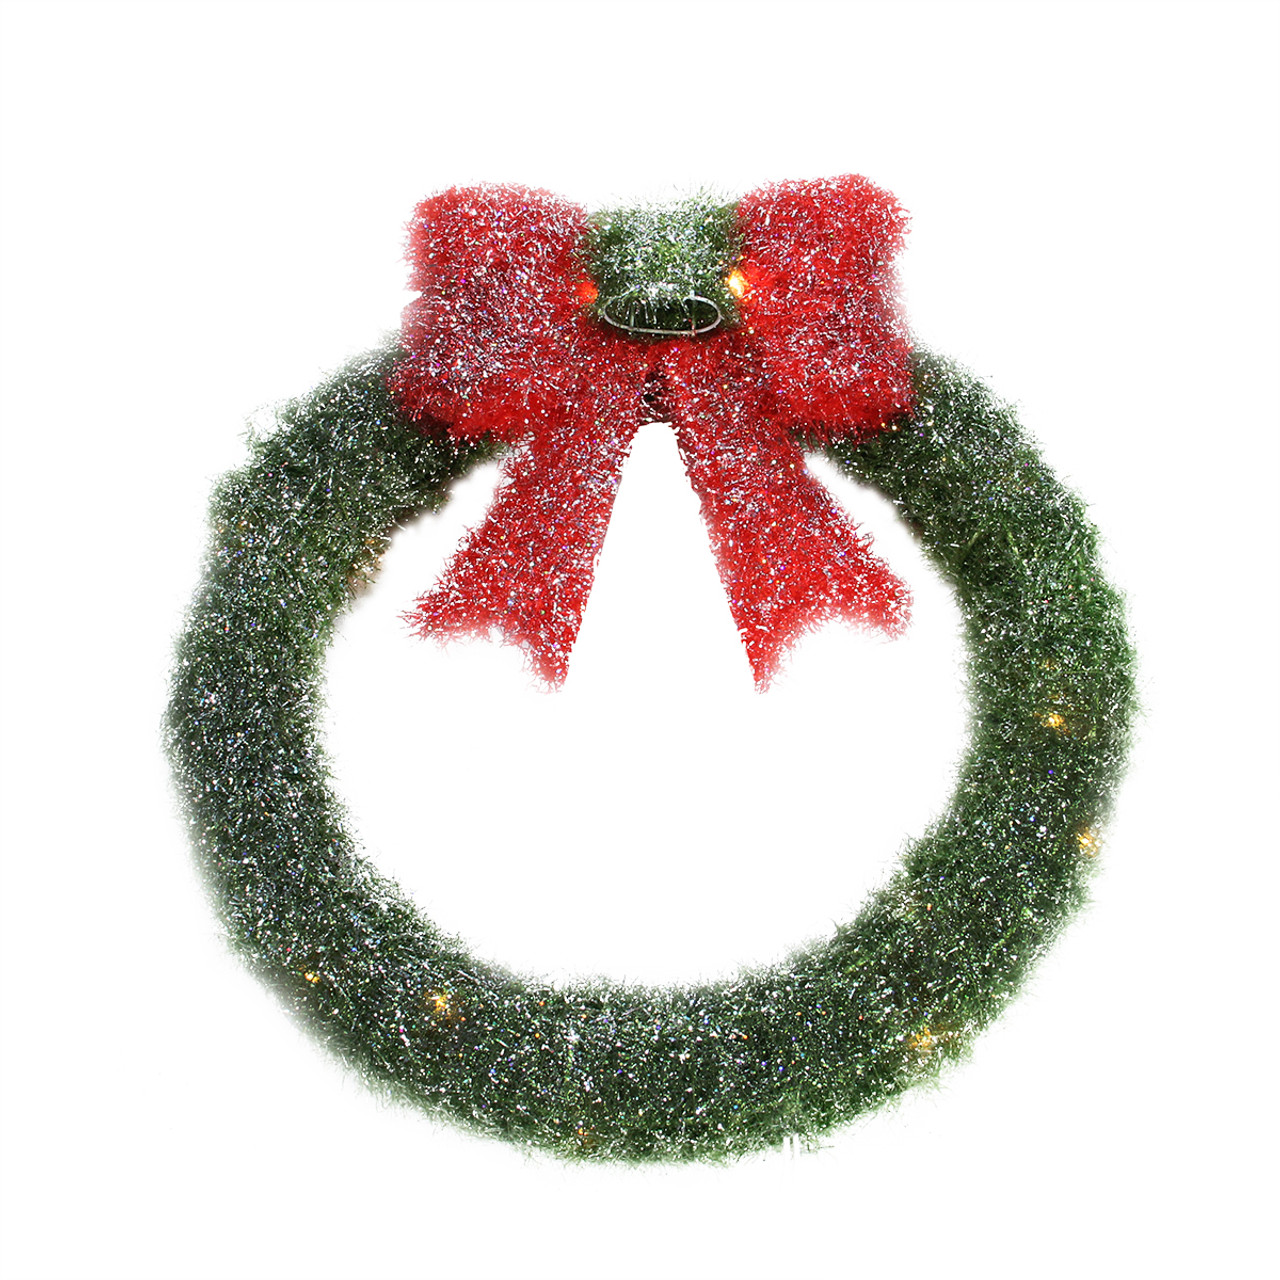 16 lighted tinsel green wreath with bow christmas window decoration 31301585 - Window Wreaths Christmas Decorations